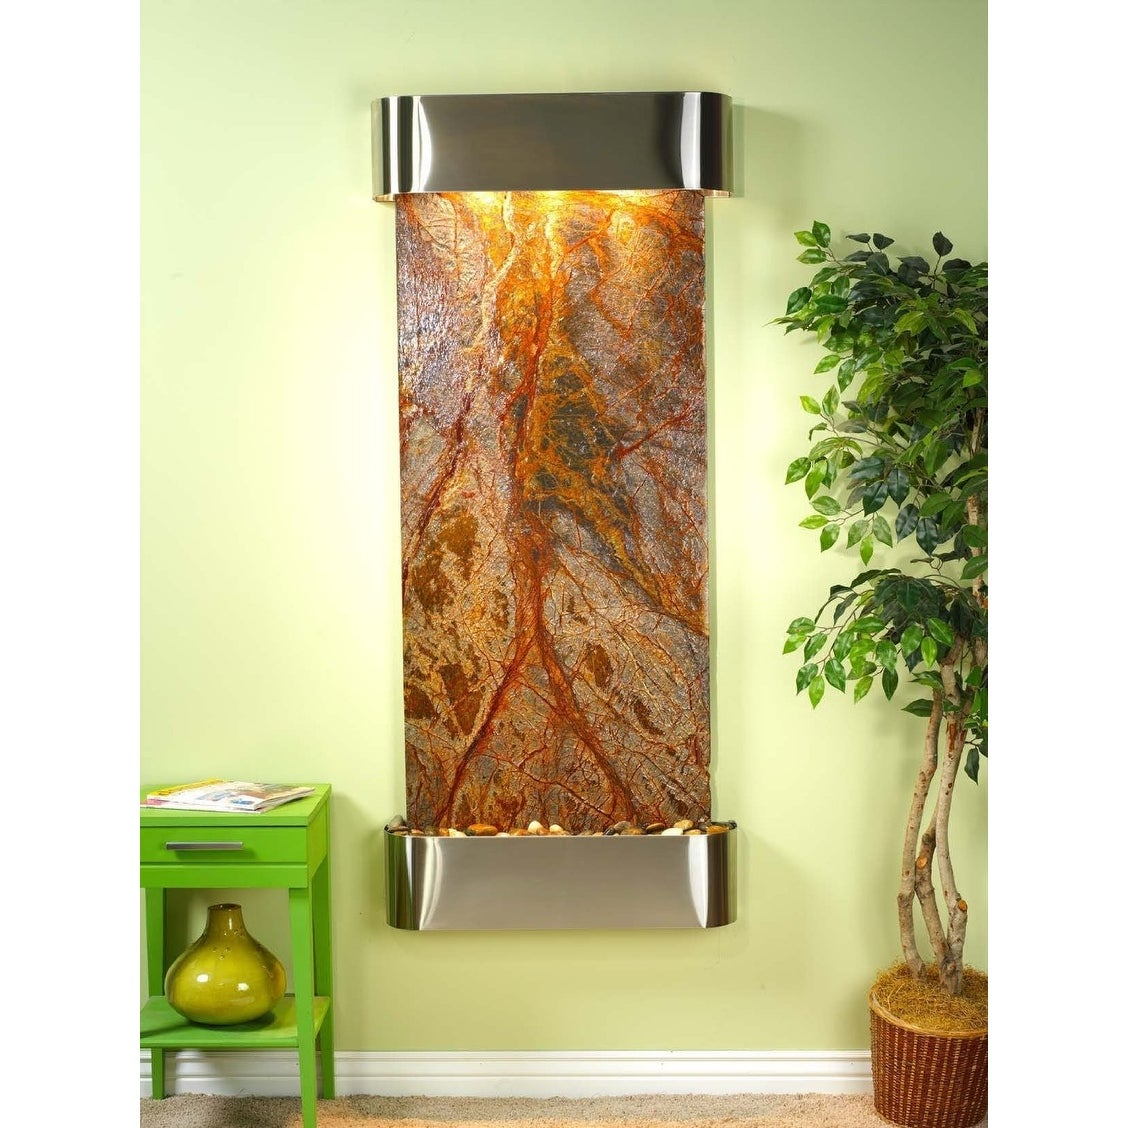 Adagio Inspiration Falls Fountain w/ Brown Rainforest Marble in Stainless Steel - Thumbnail 0